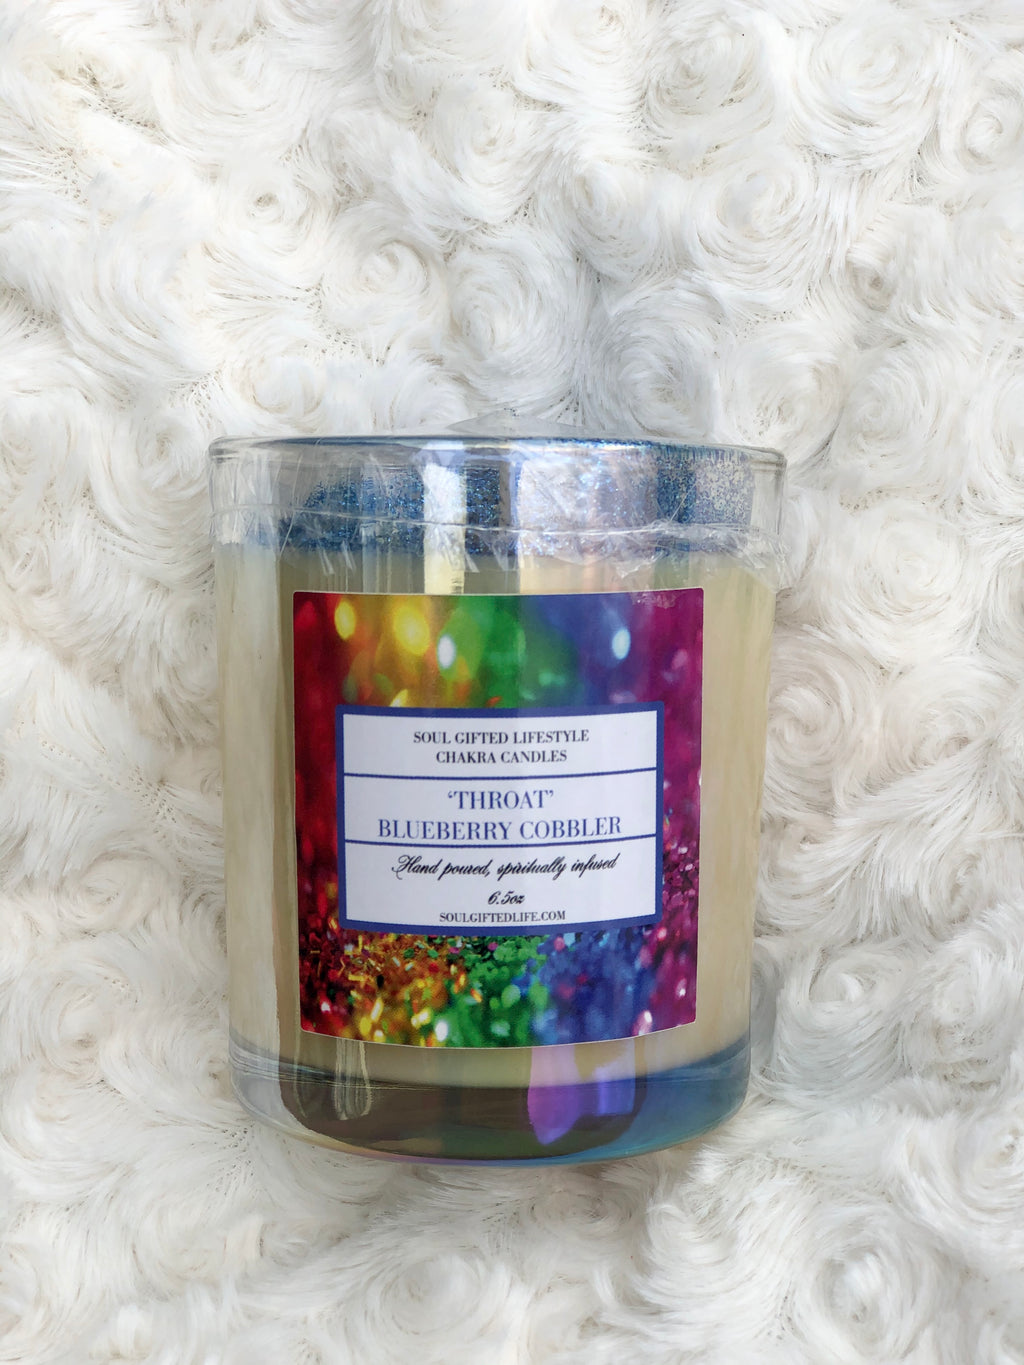 Throat Chakra Candle (Blueberry Cobbler)